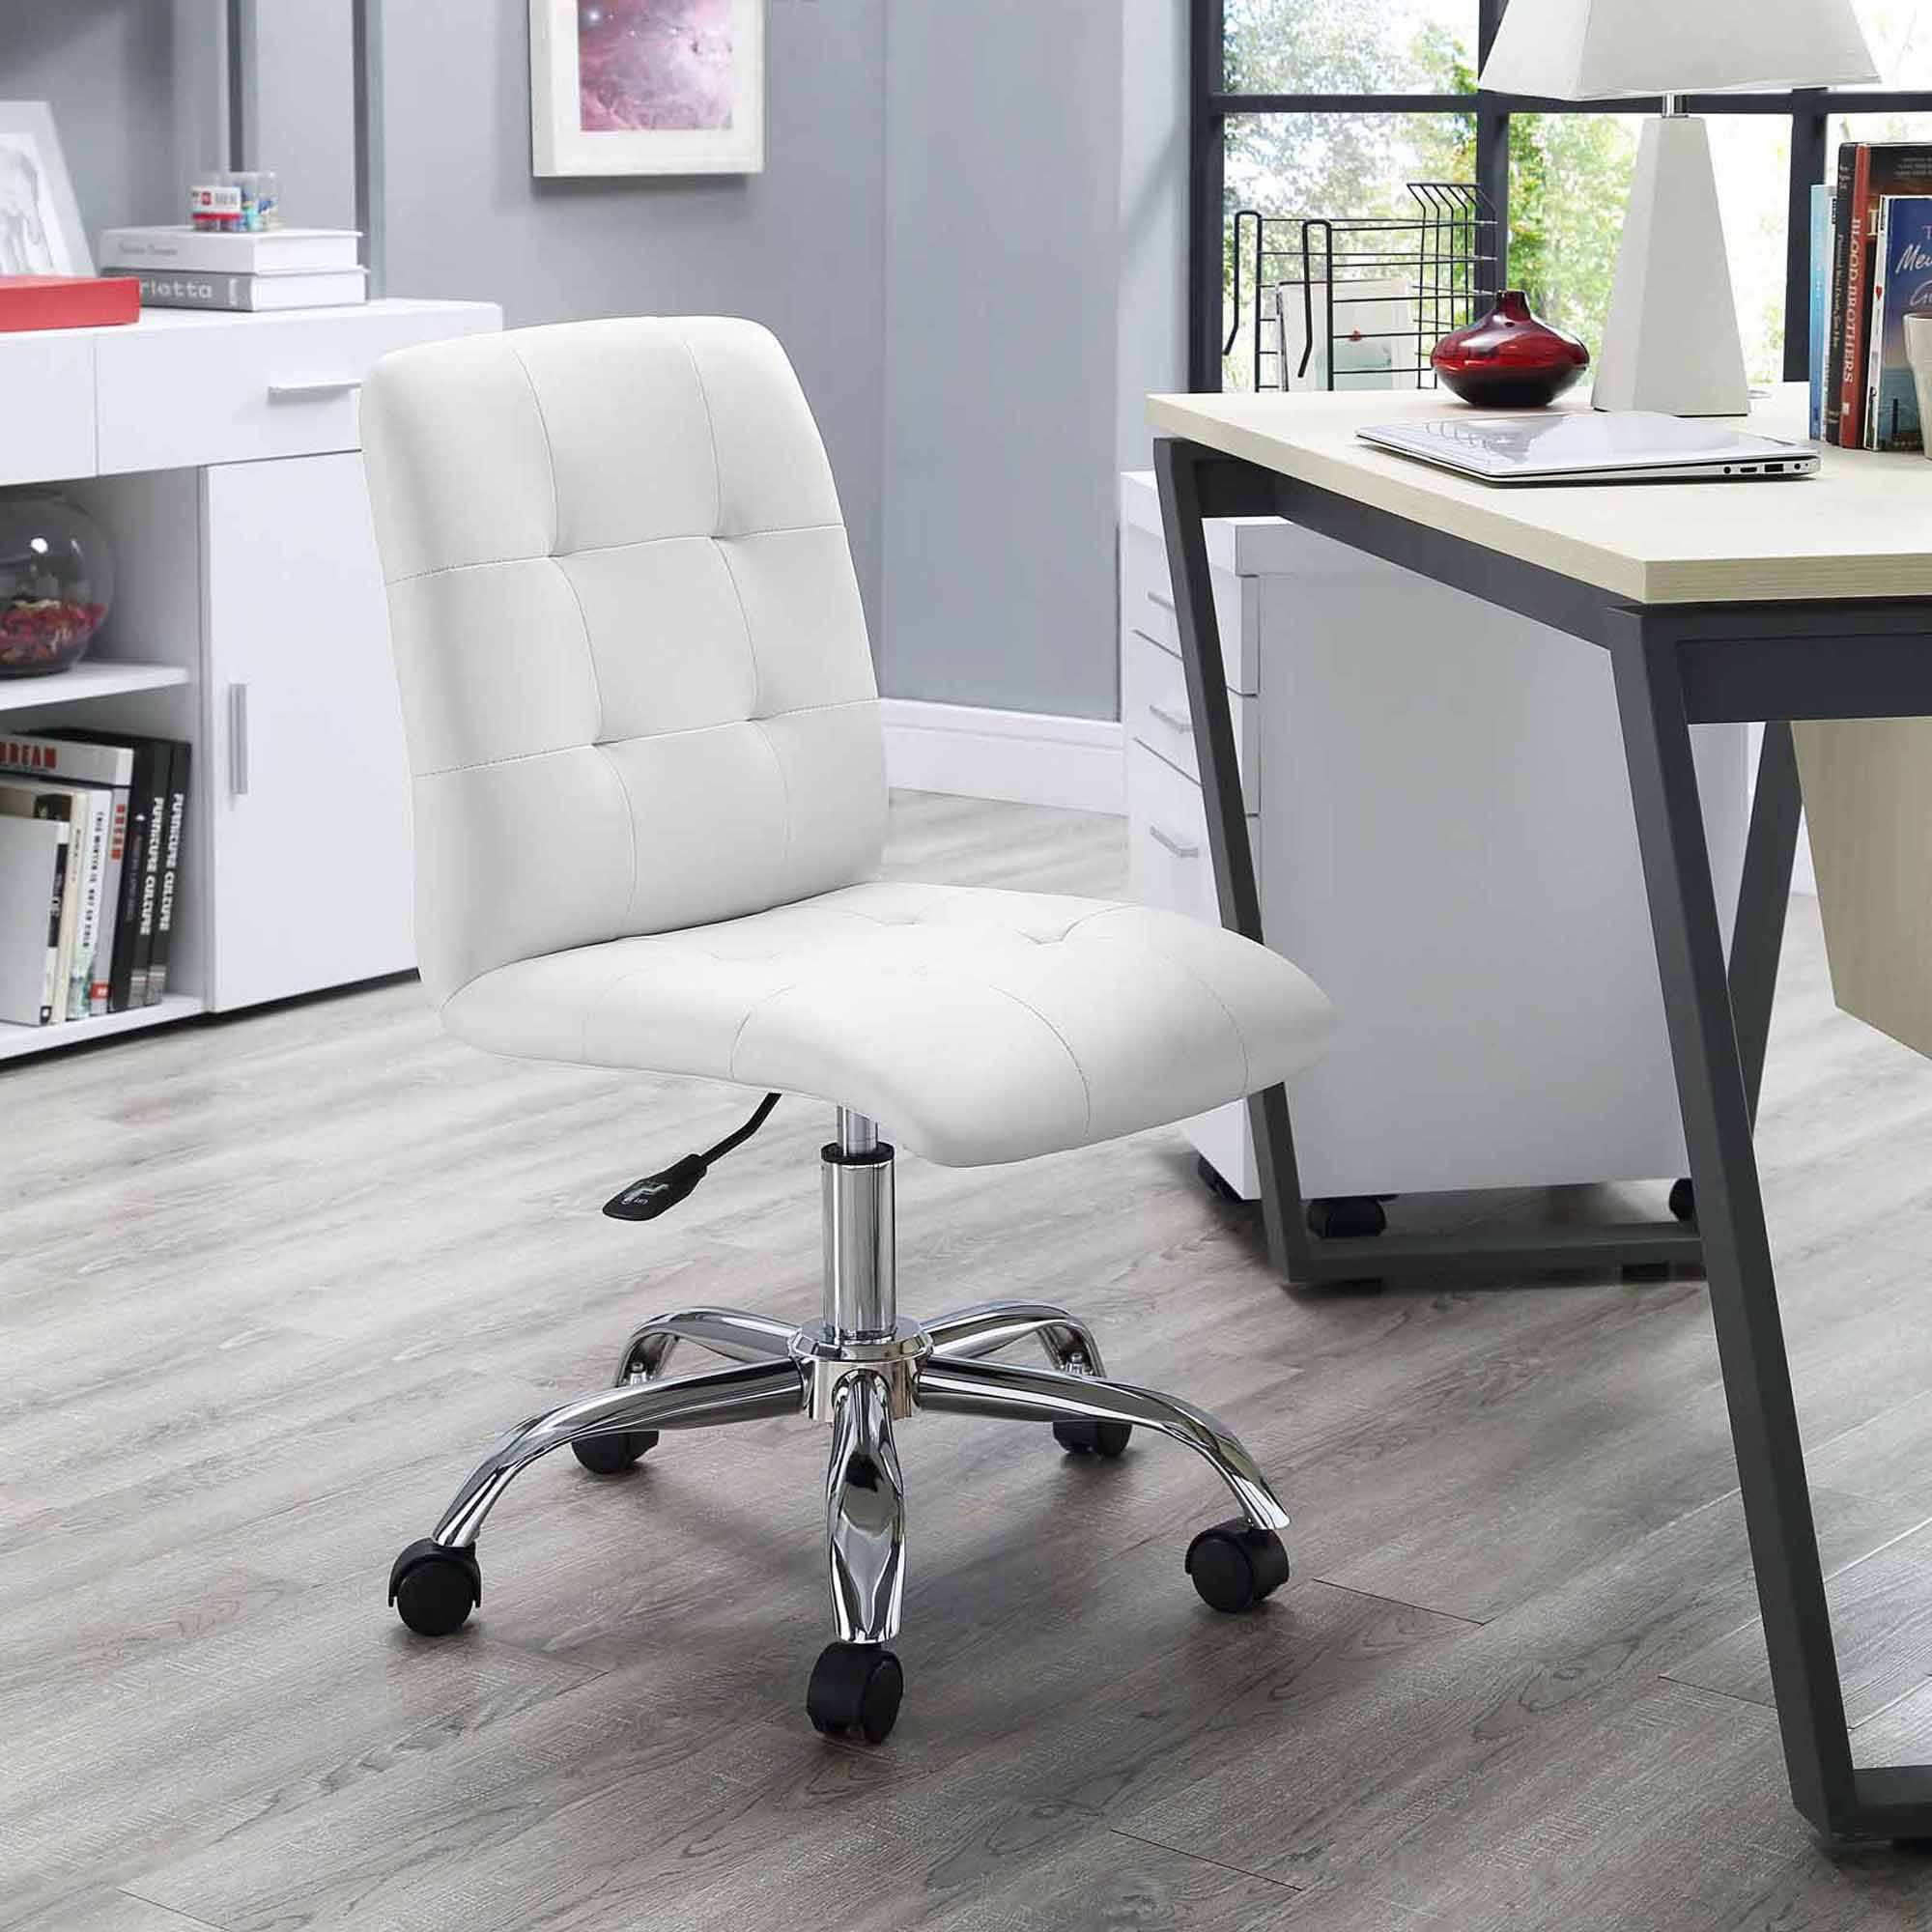 Baby Chairs At Walmart Modway Prim Armless Midback Leatherette Office Chair